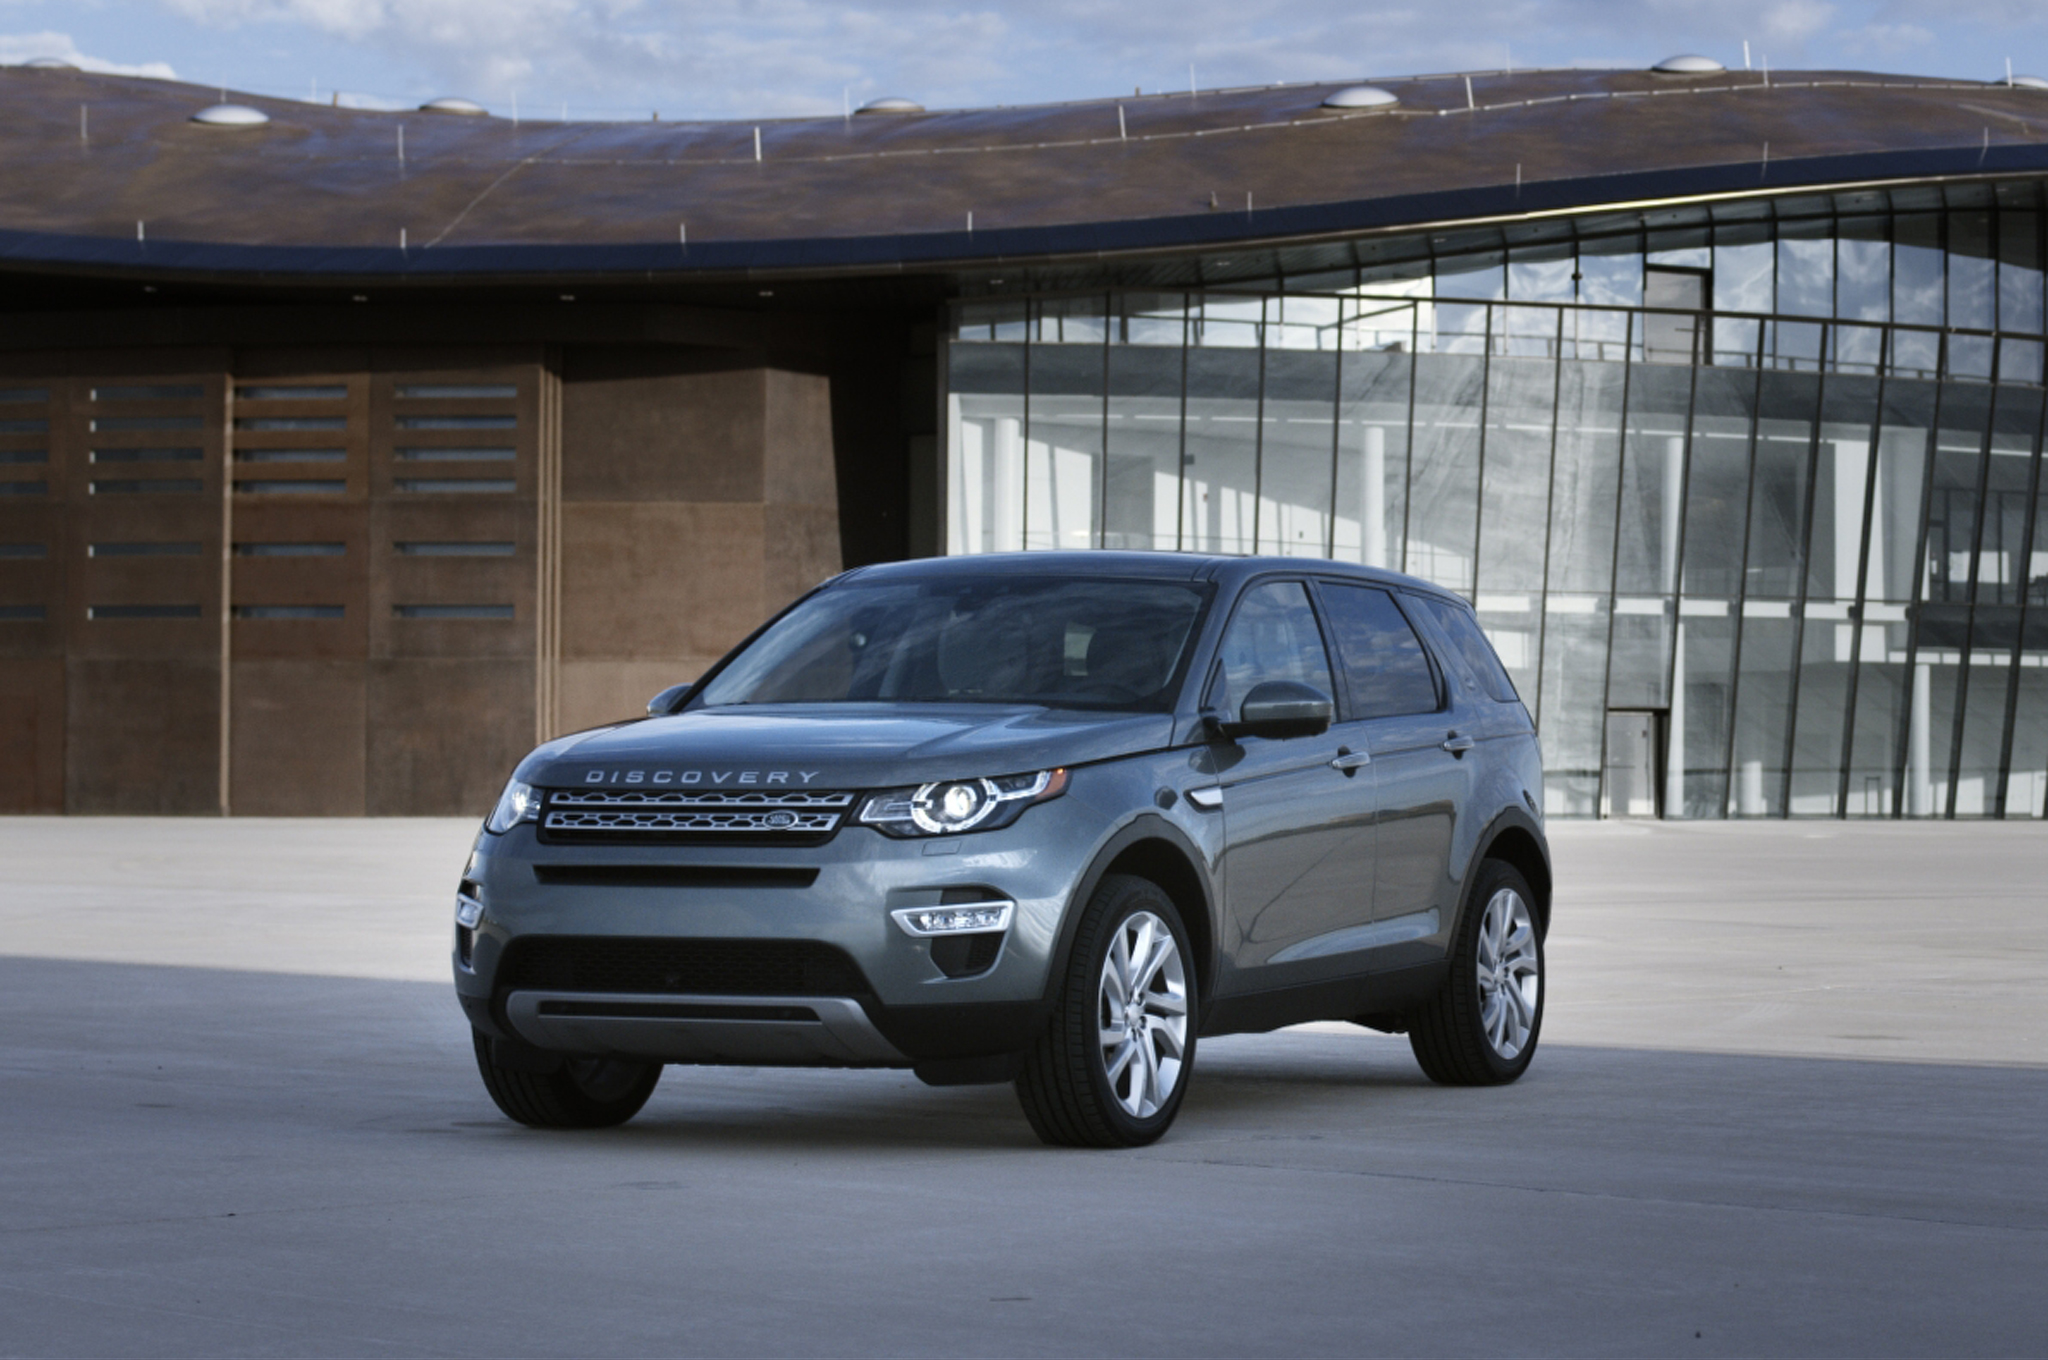 Land Rover Discovery Sport #5